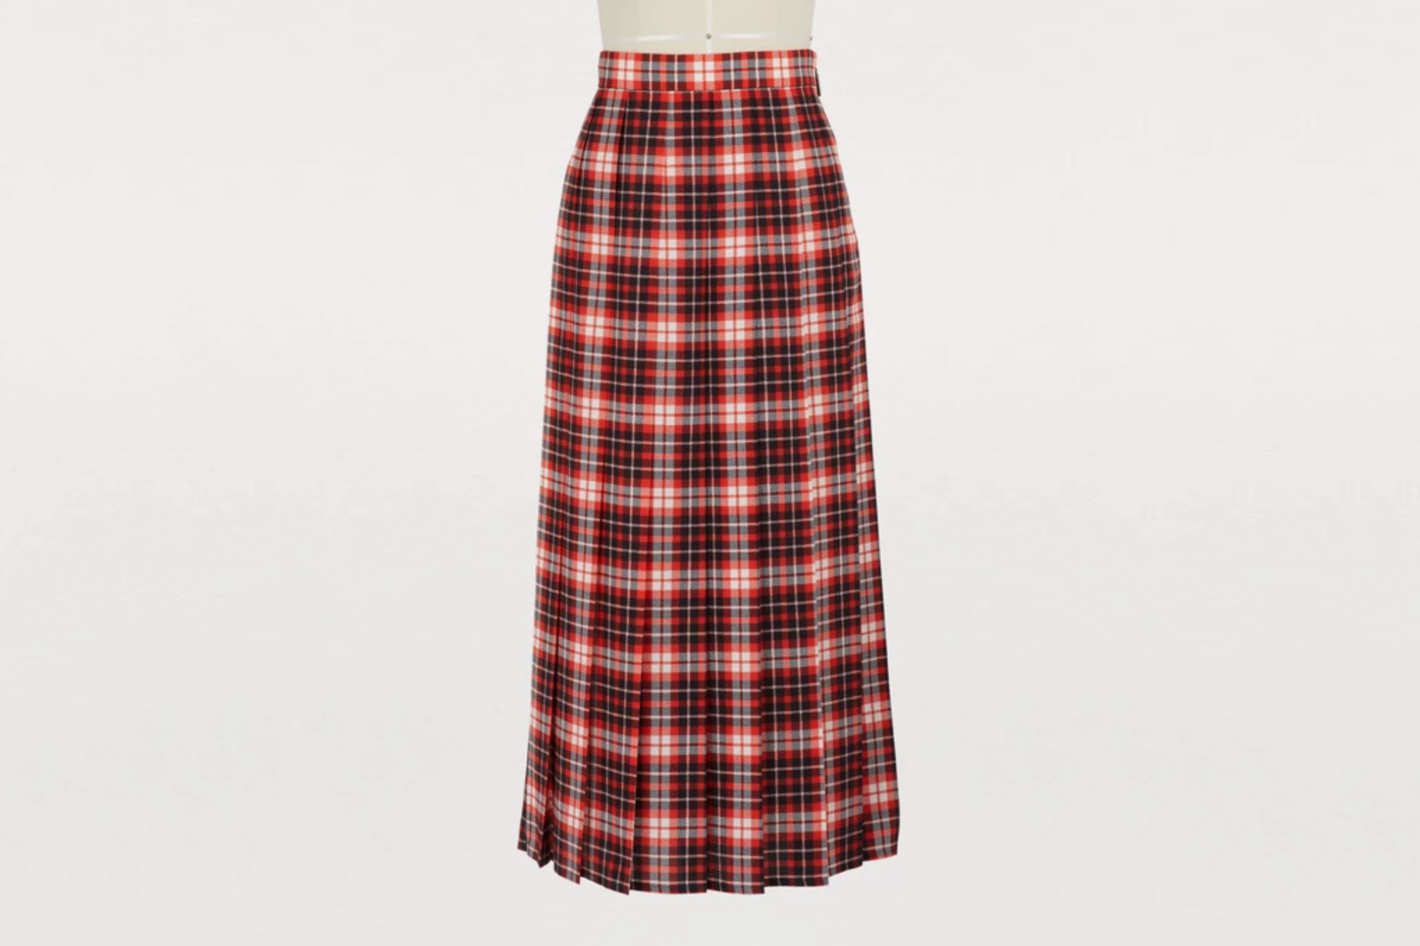 c4a149fd8faf Best Plaid Skirts to Wear to a Christmas Party